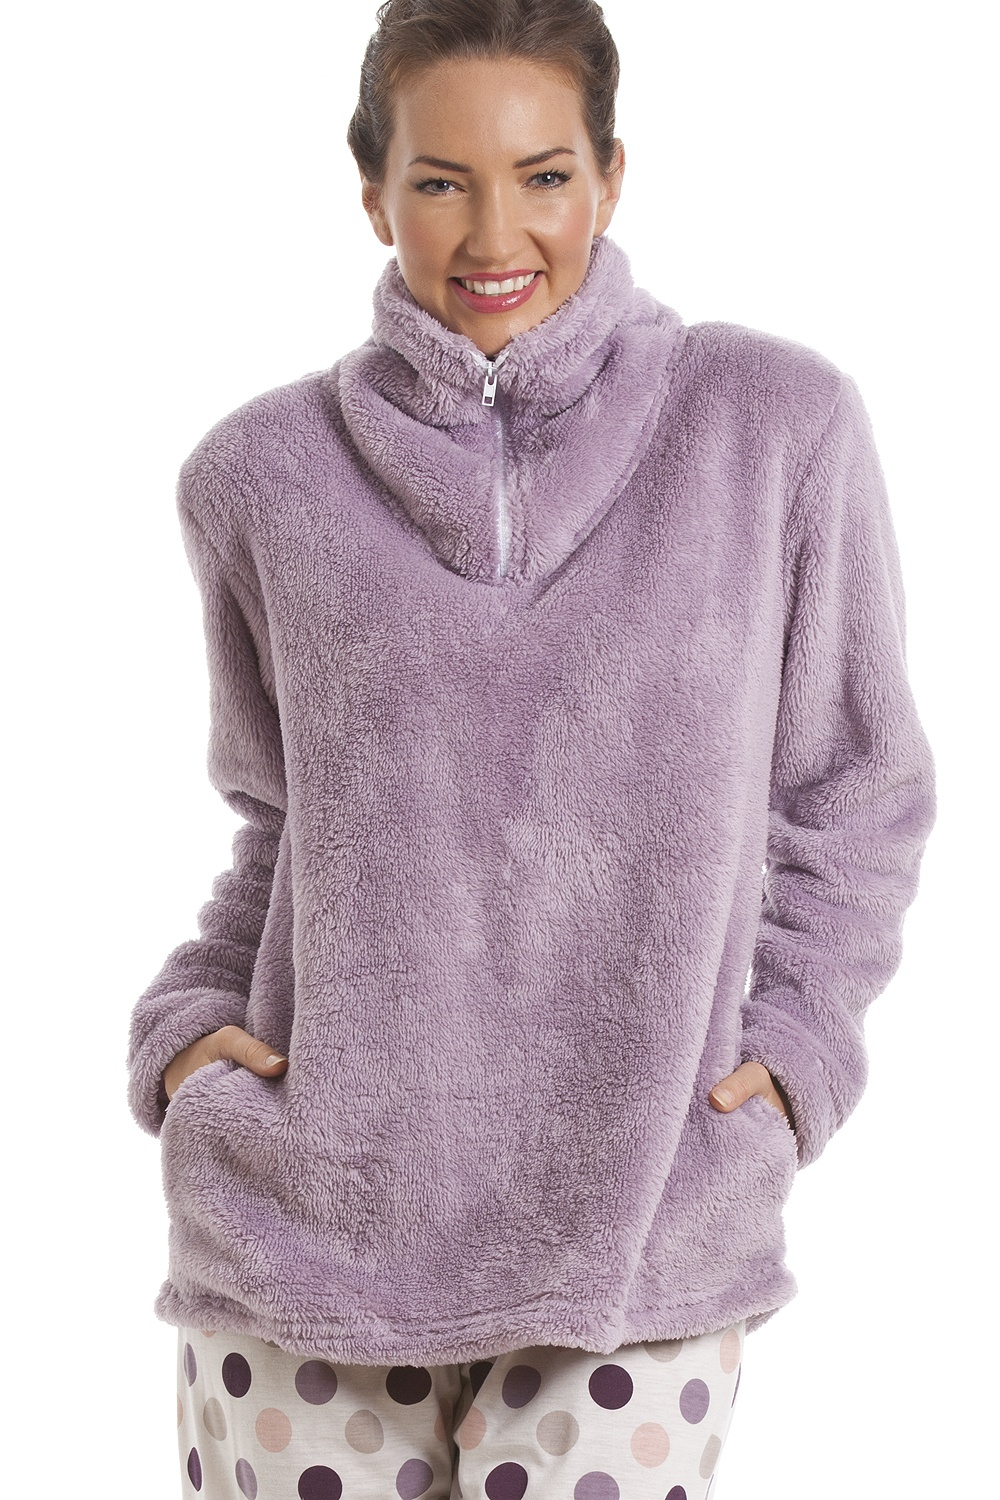 complimentary shipping new selection outlet store sale Purple Supersoft Fleece Top And Polka Dot Bottoms Pyjama Set